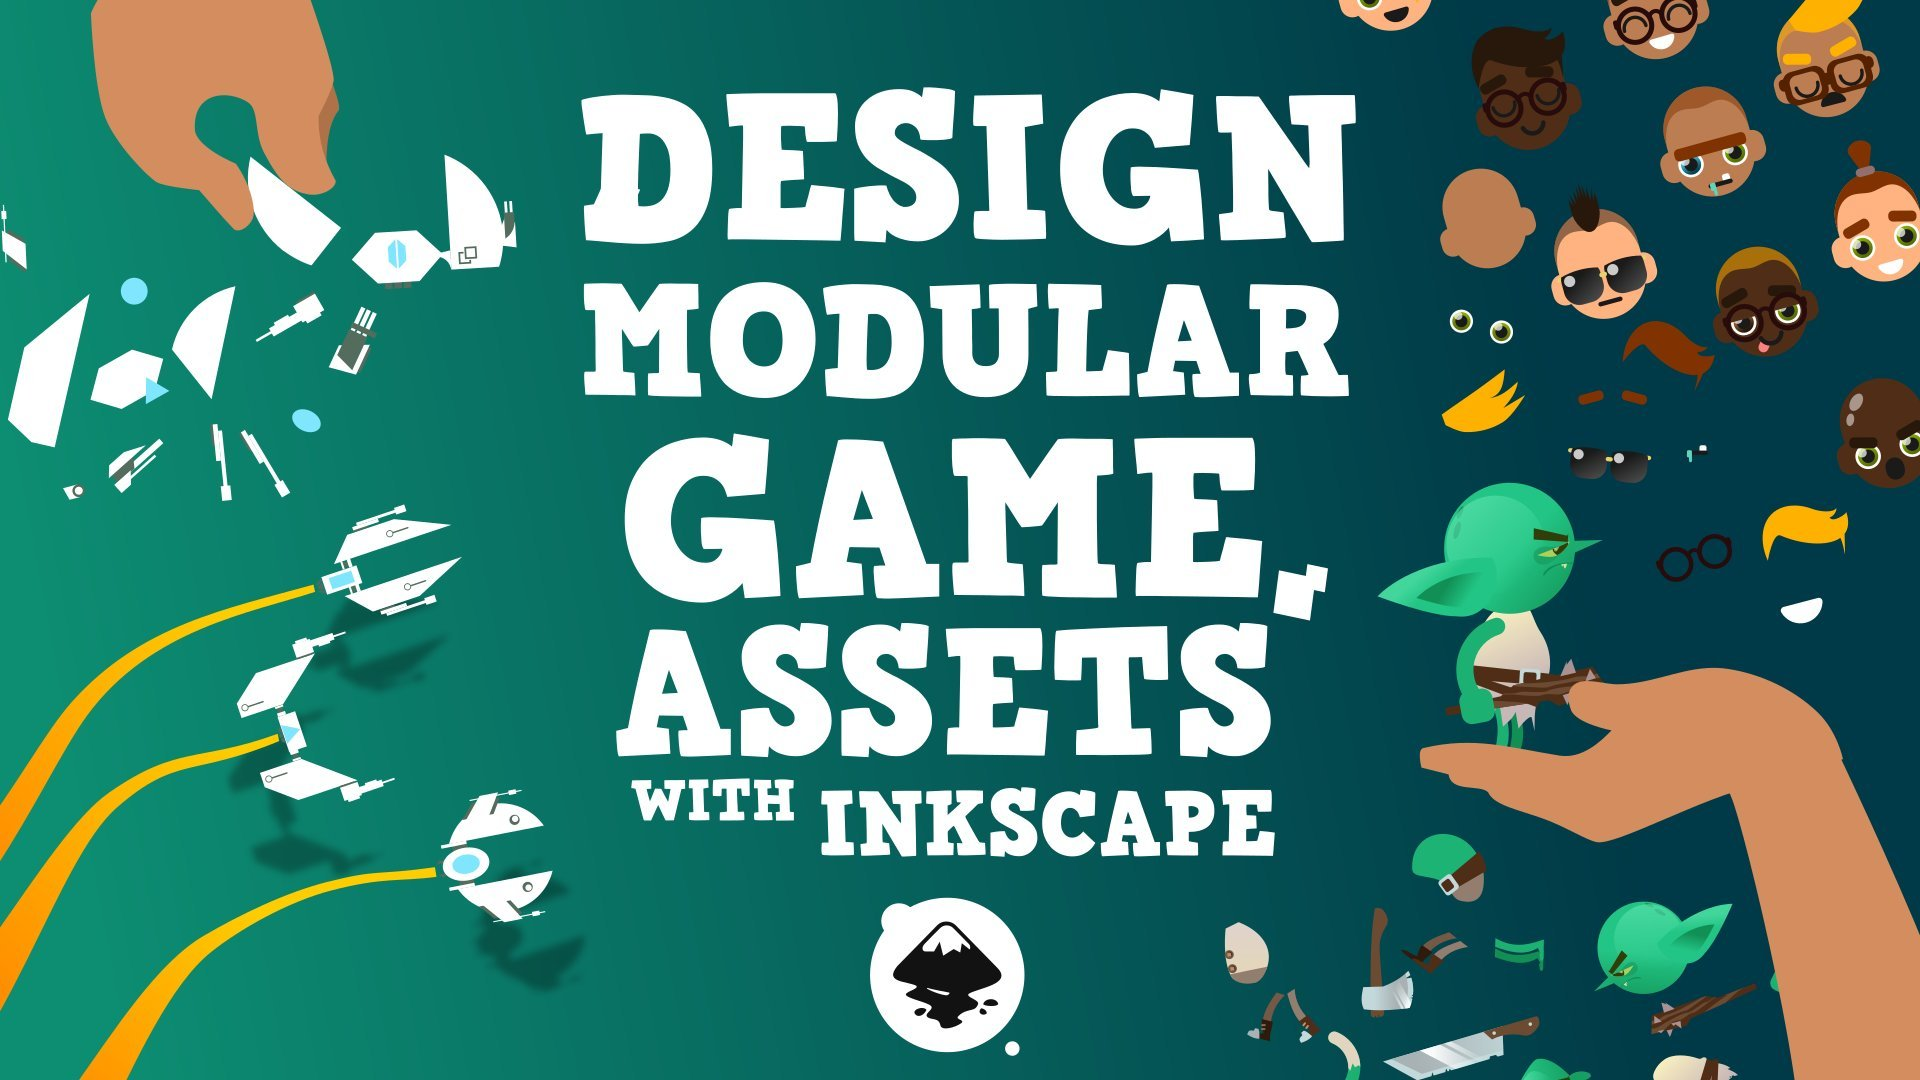 Design modular game assets with Inkscape!